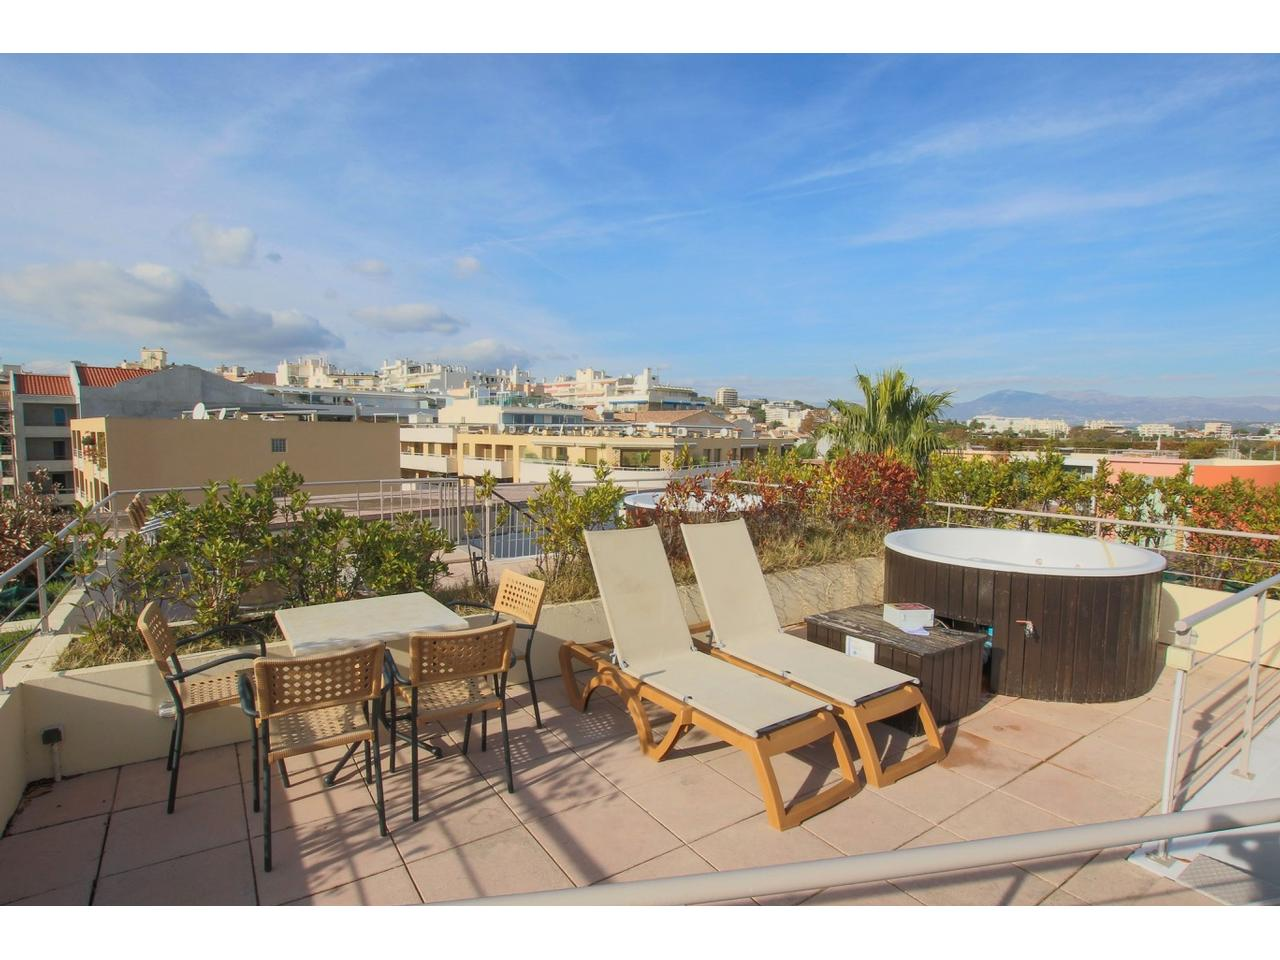 Immobilier nice vue mer appartement antibes appartement 2 for Appartement toit terrasse